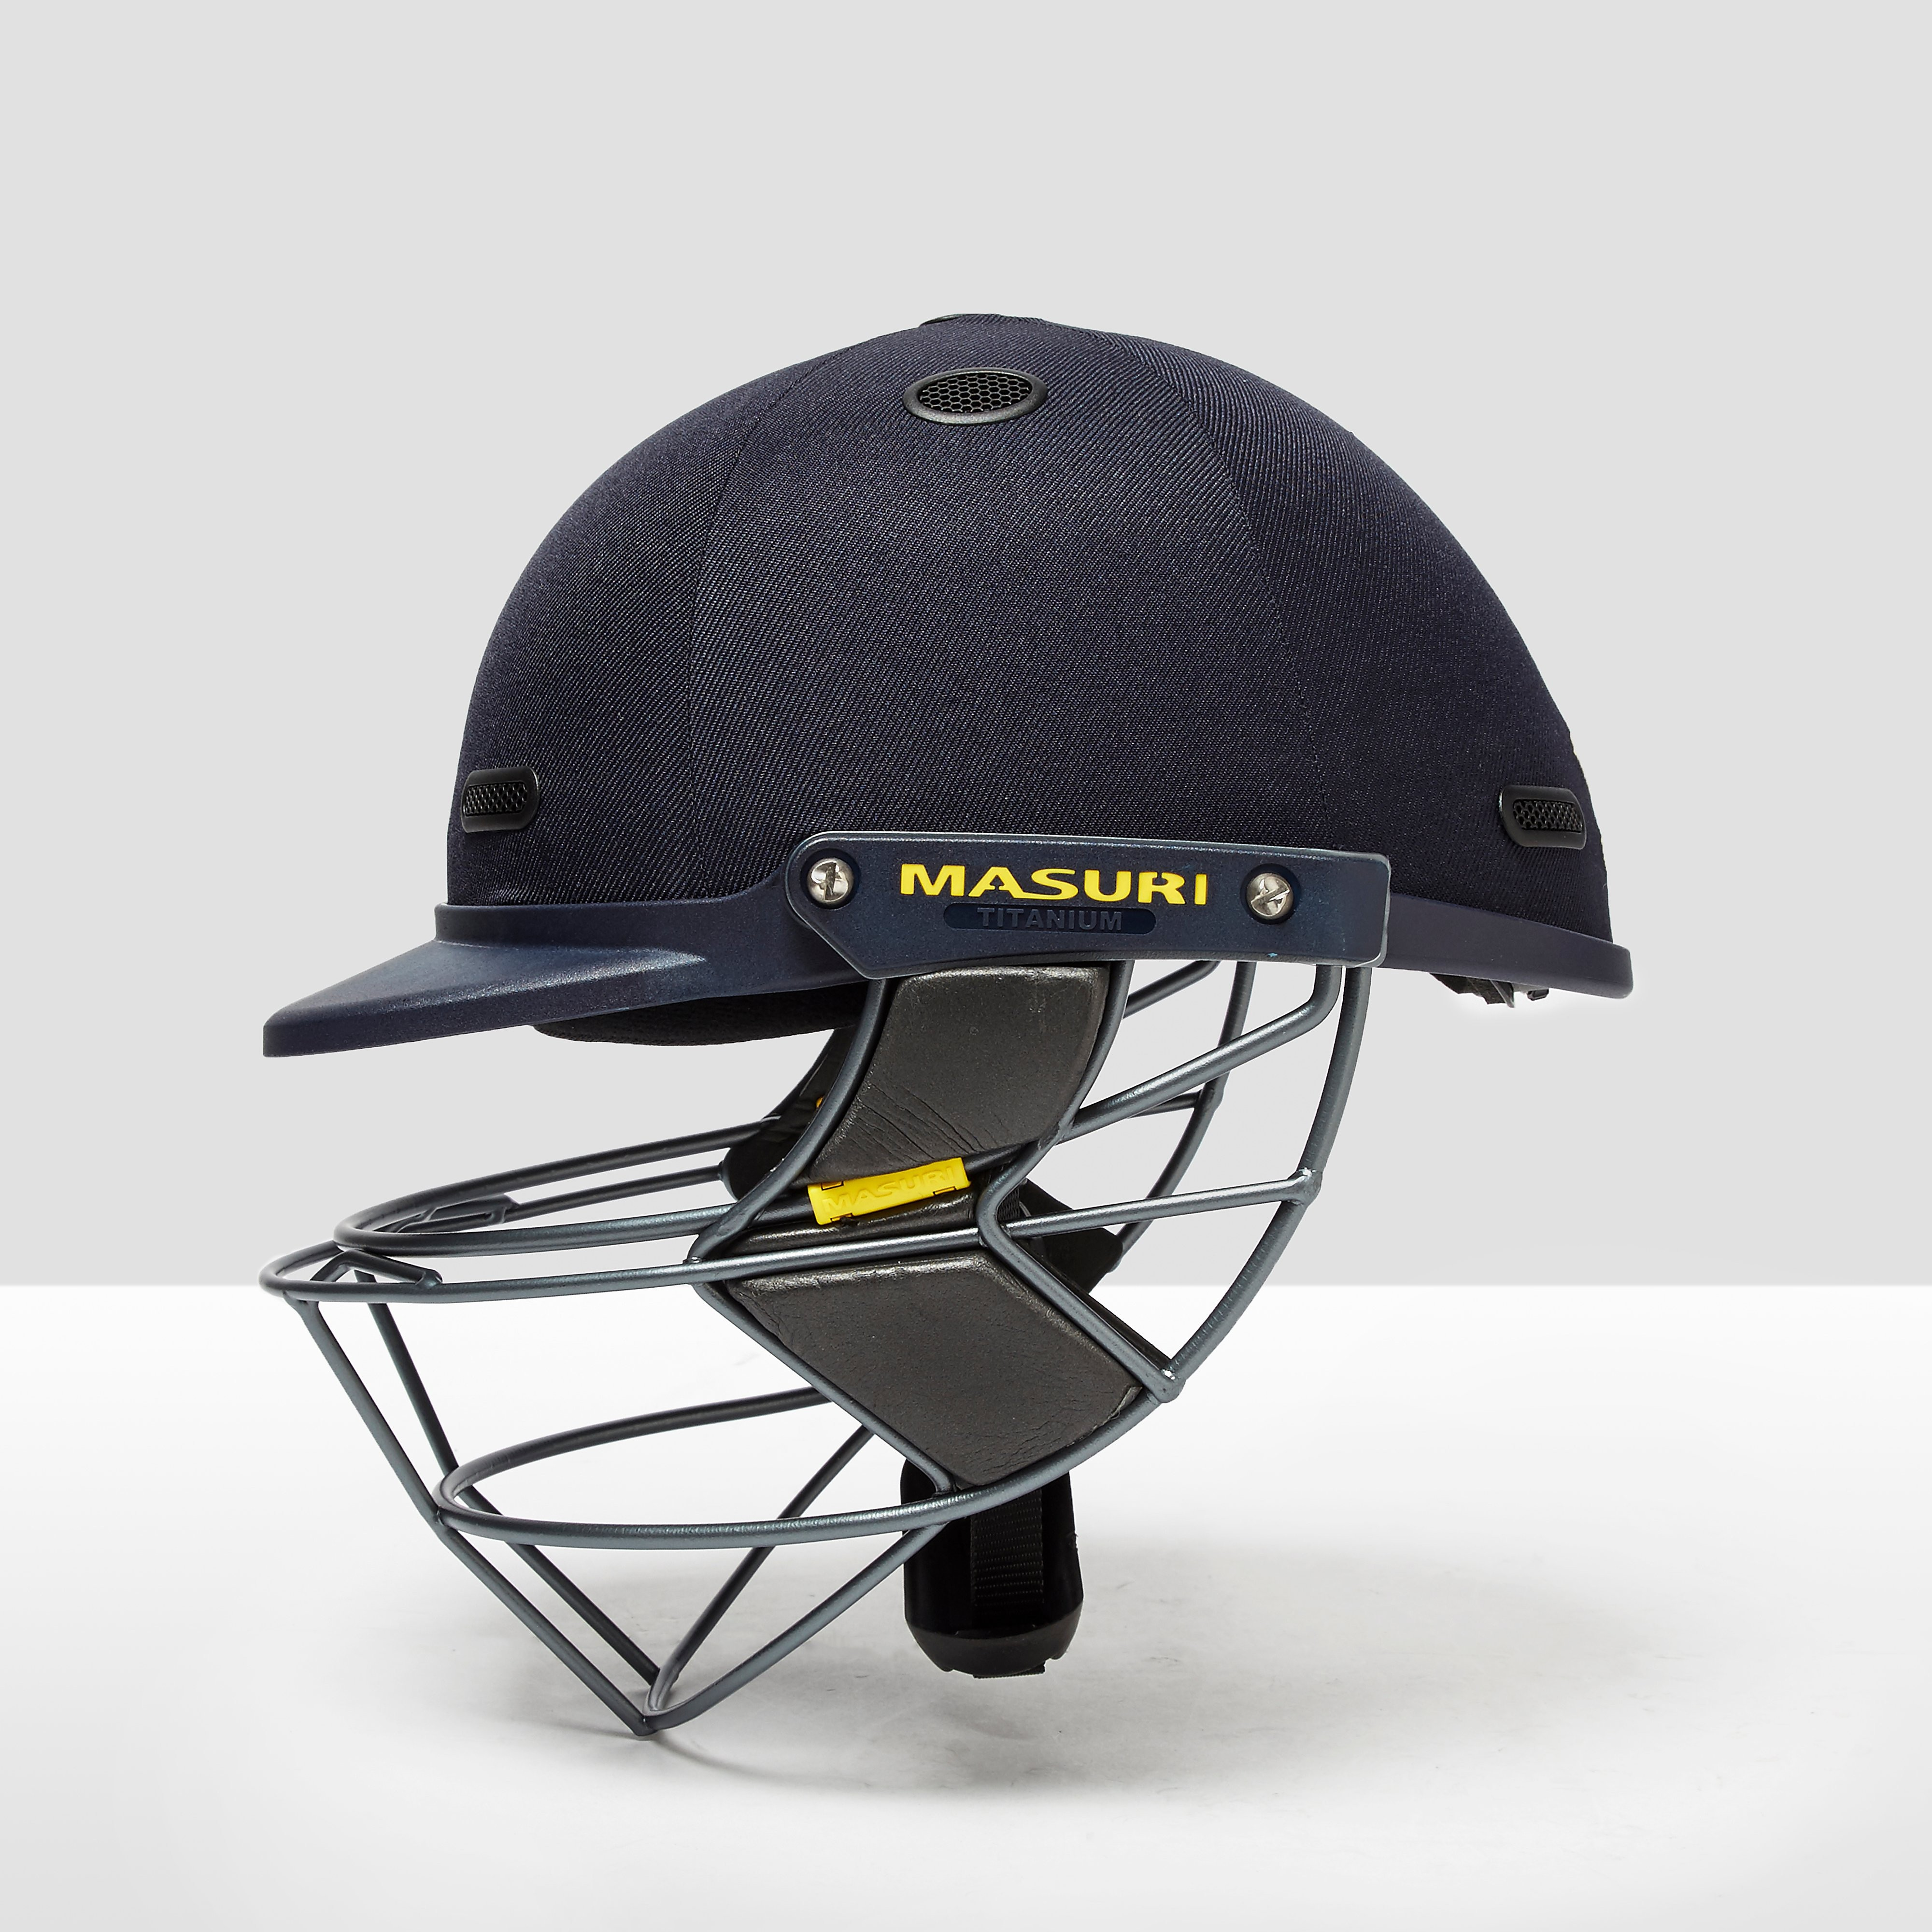 Masuri VS Elite Titanium Adult Cricket Helmet